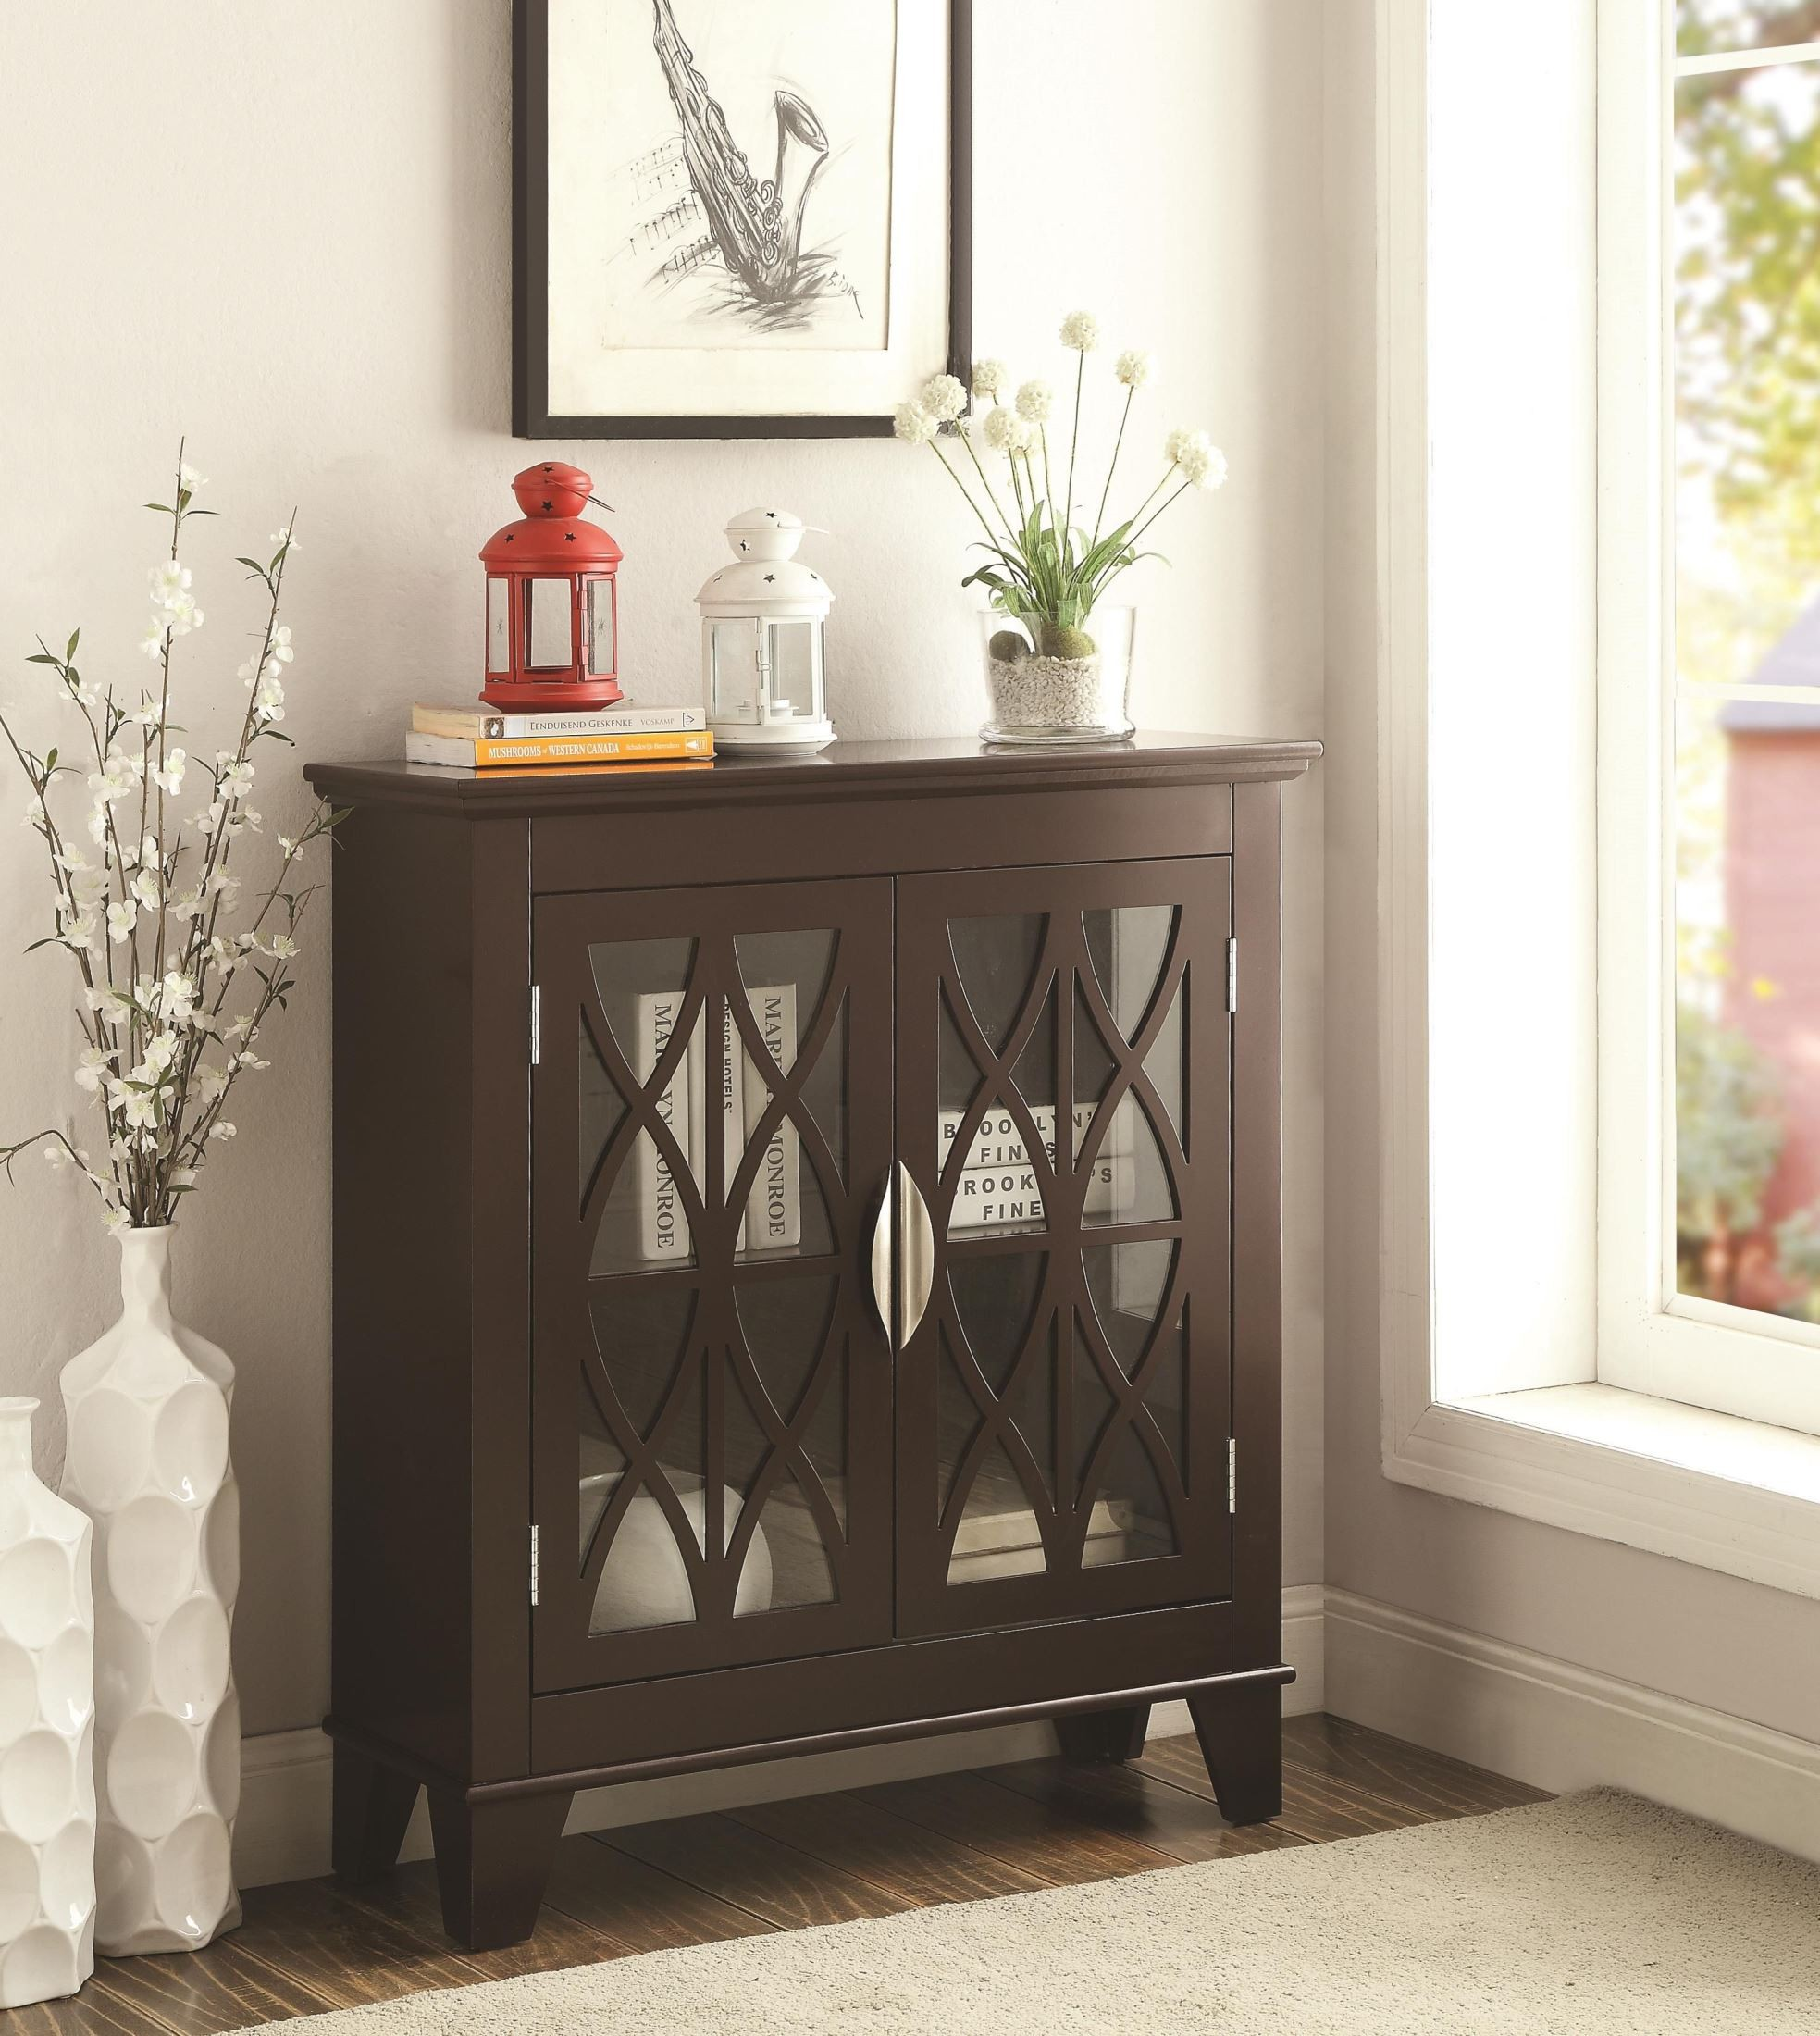 Accent cabinet with glass doors - 950311 Glass Doors Cappuccino Accent Cabinet Coaster Furniture 603937 603938